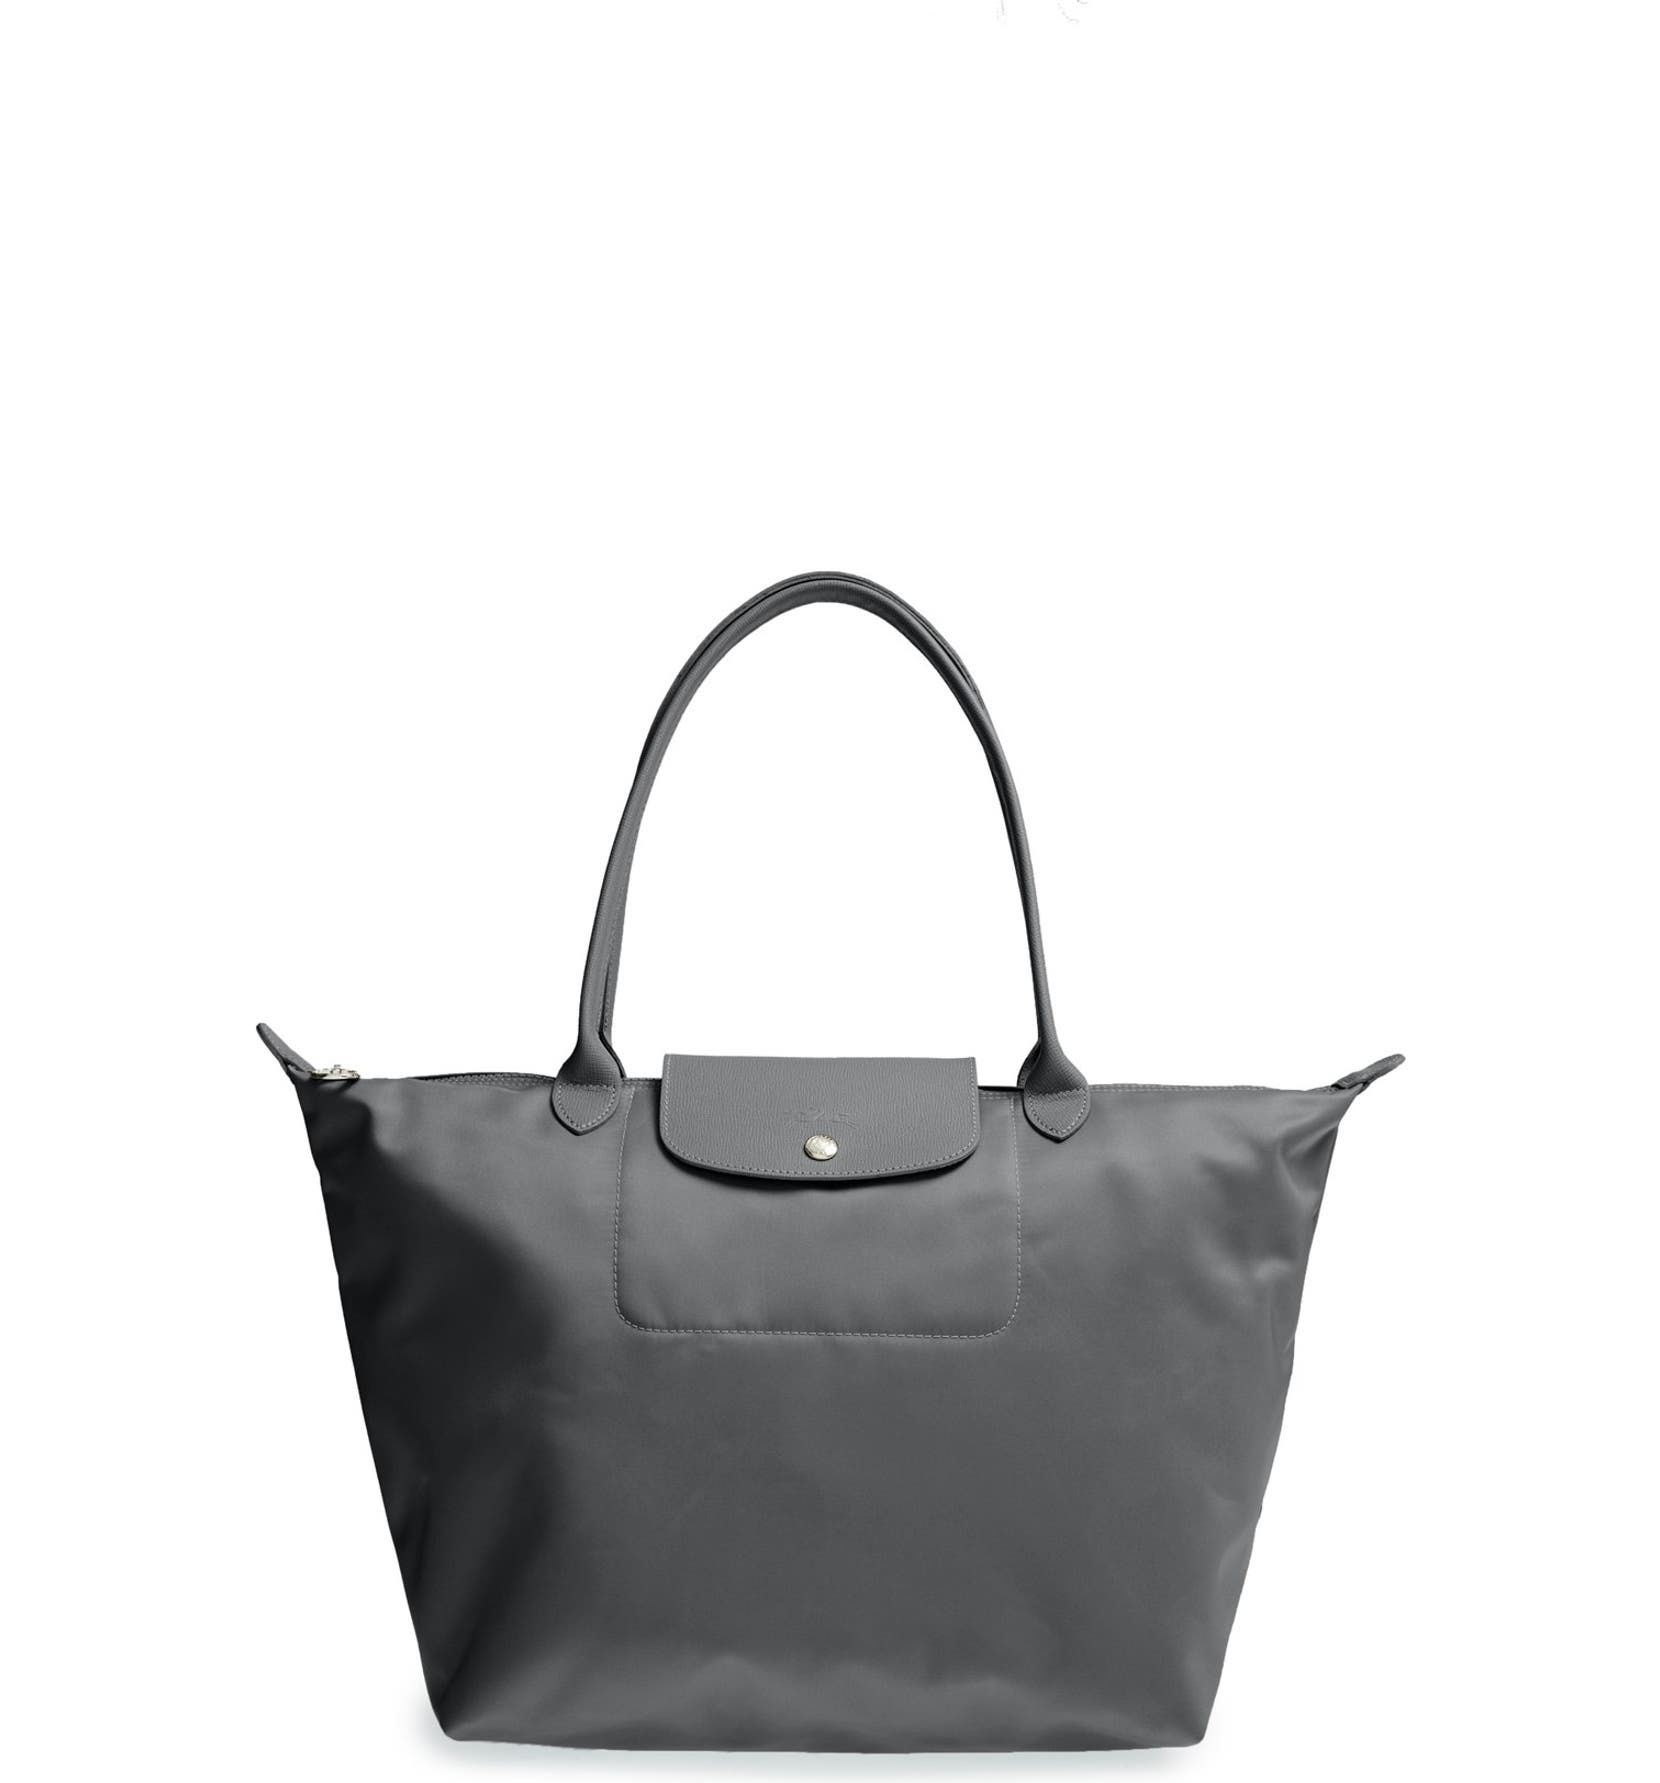 new style 44890 c552a Longchamp  Large Le Pliage Neo  Nylon Tote   Nordstrom